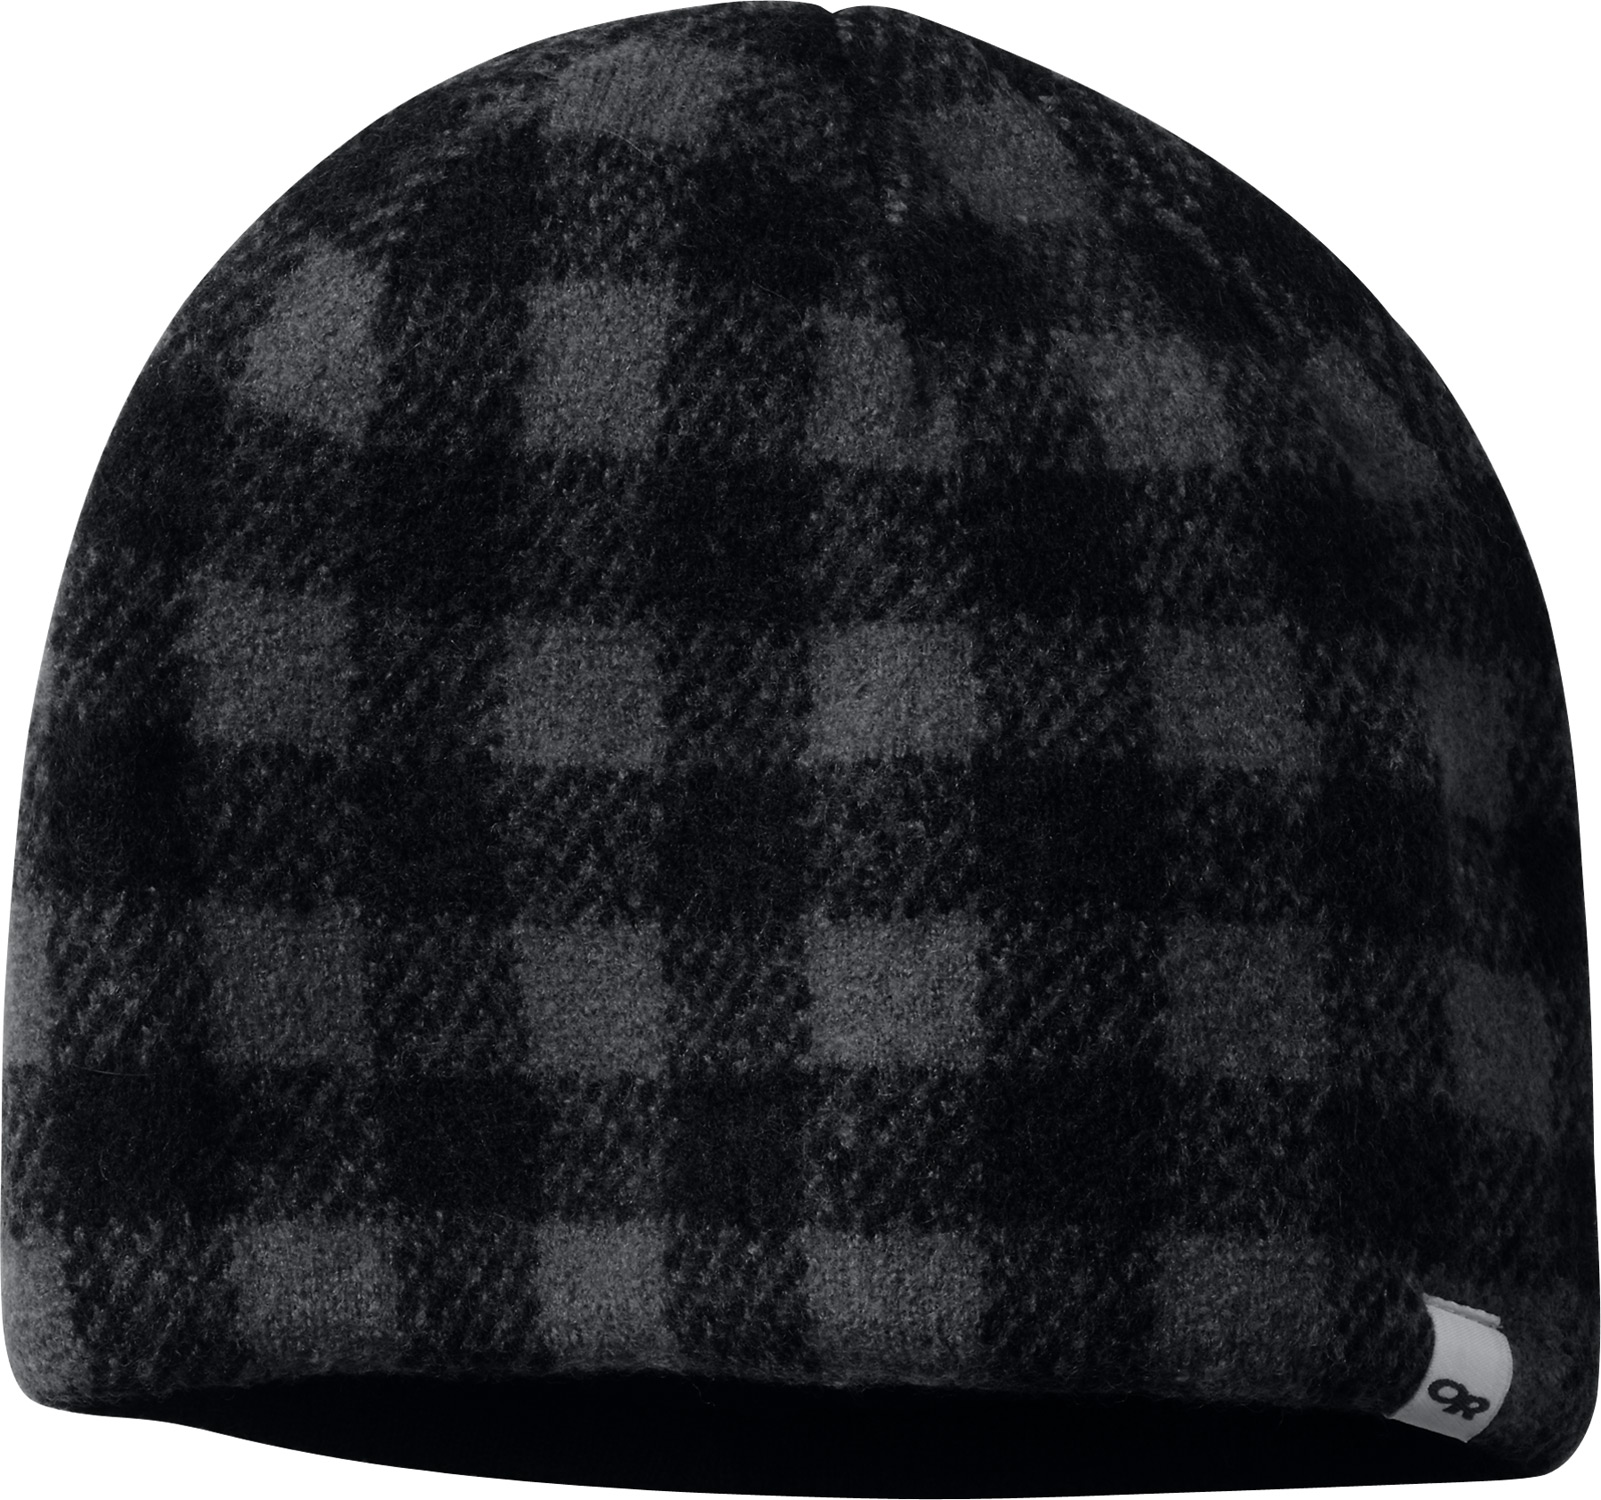 Key Features of the Outdoor Research Svalbard Beanie: 100% wool WINDSTOPPER Technical Fleece lined ear band - $22.95